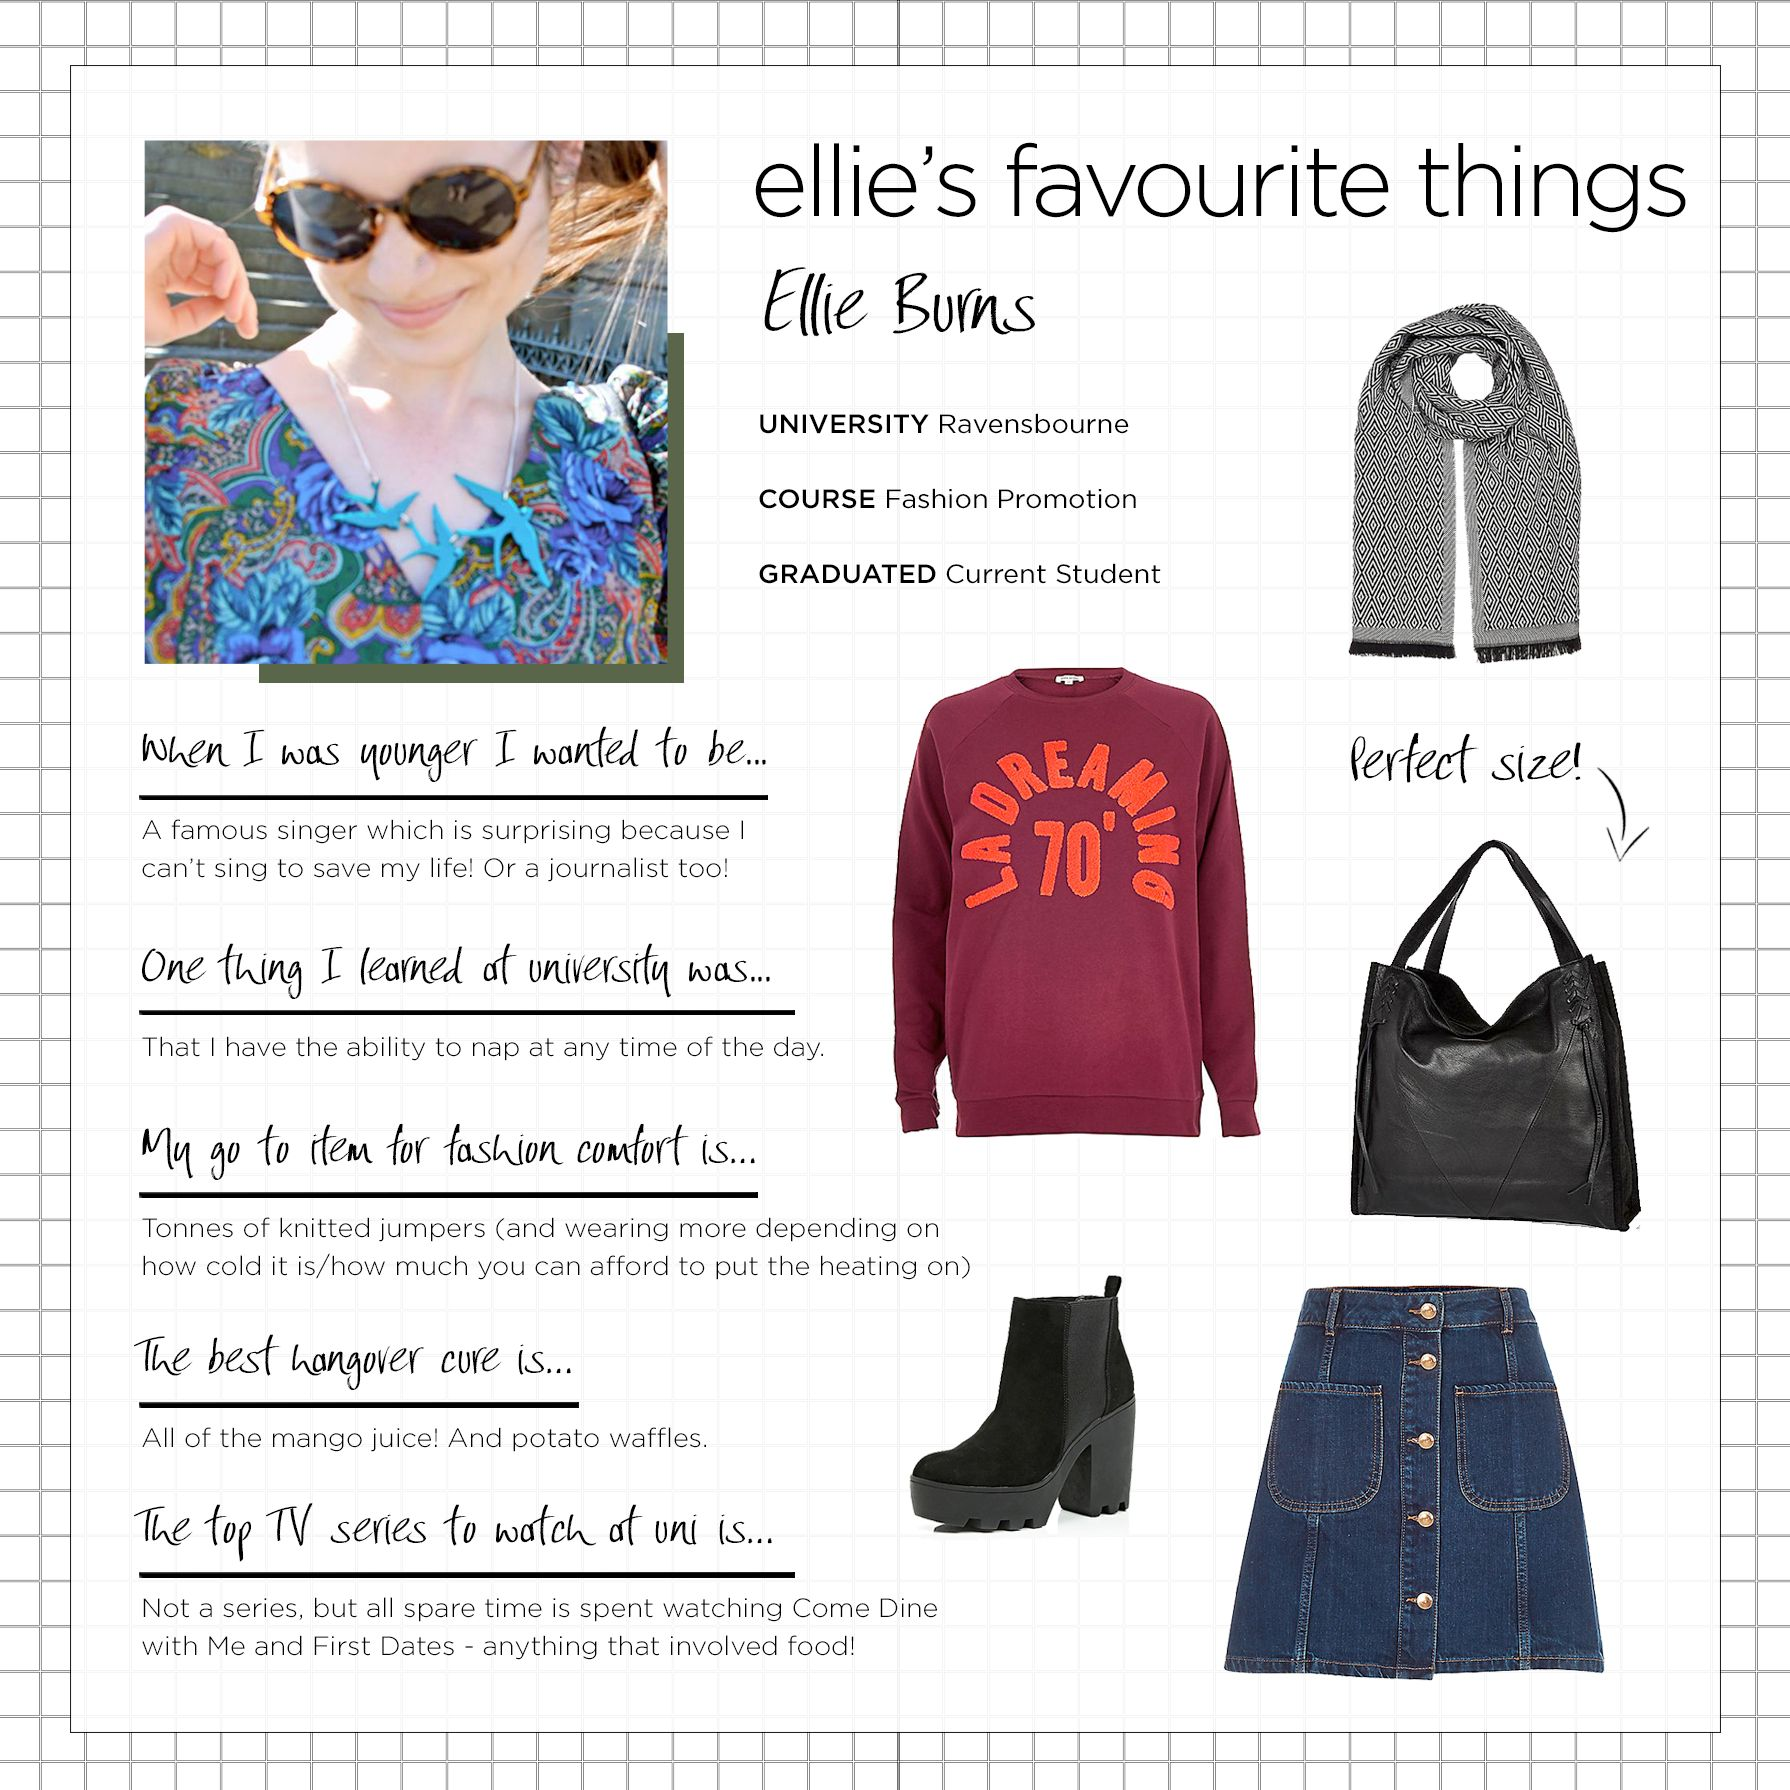 ELLIE'S FAVORITE THINGS